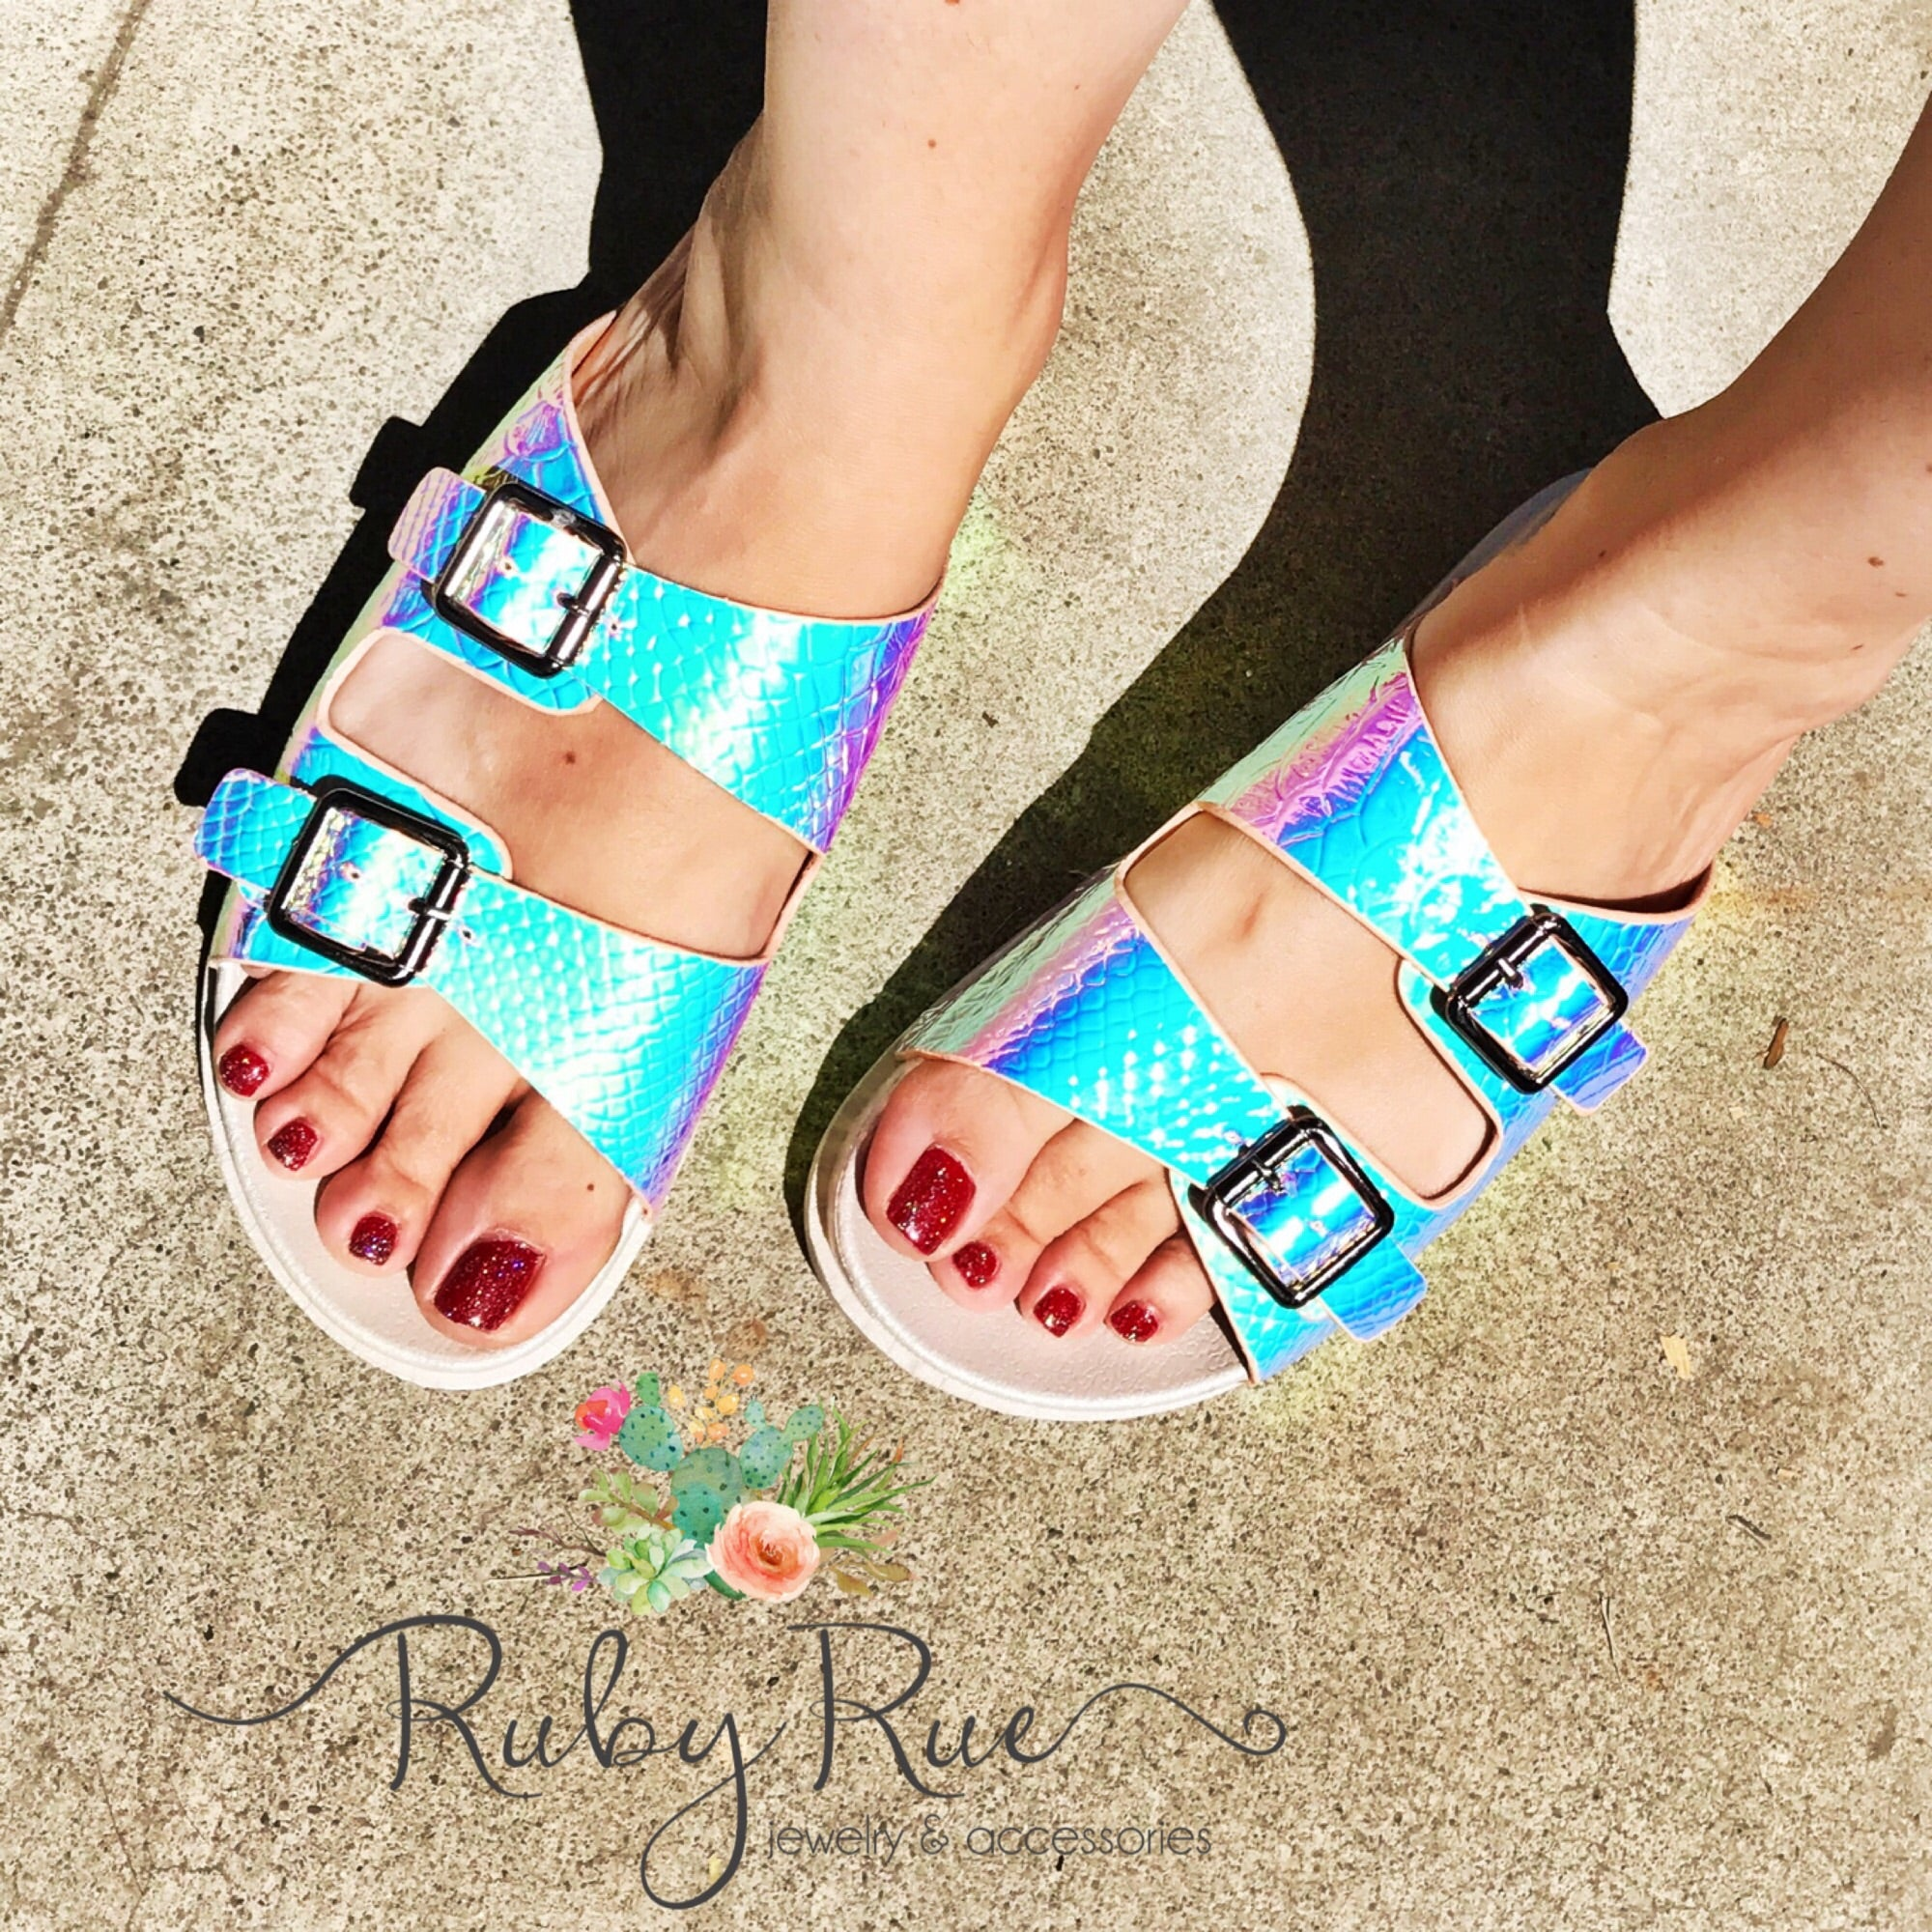 Unicorn Sandals - Ruby Rue Jewelry & Accessories